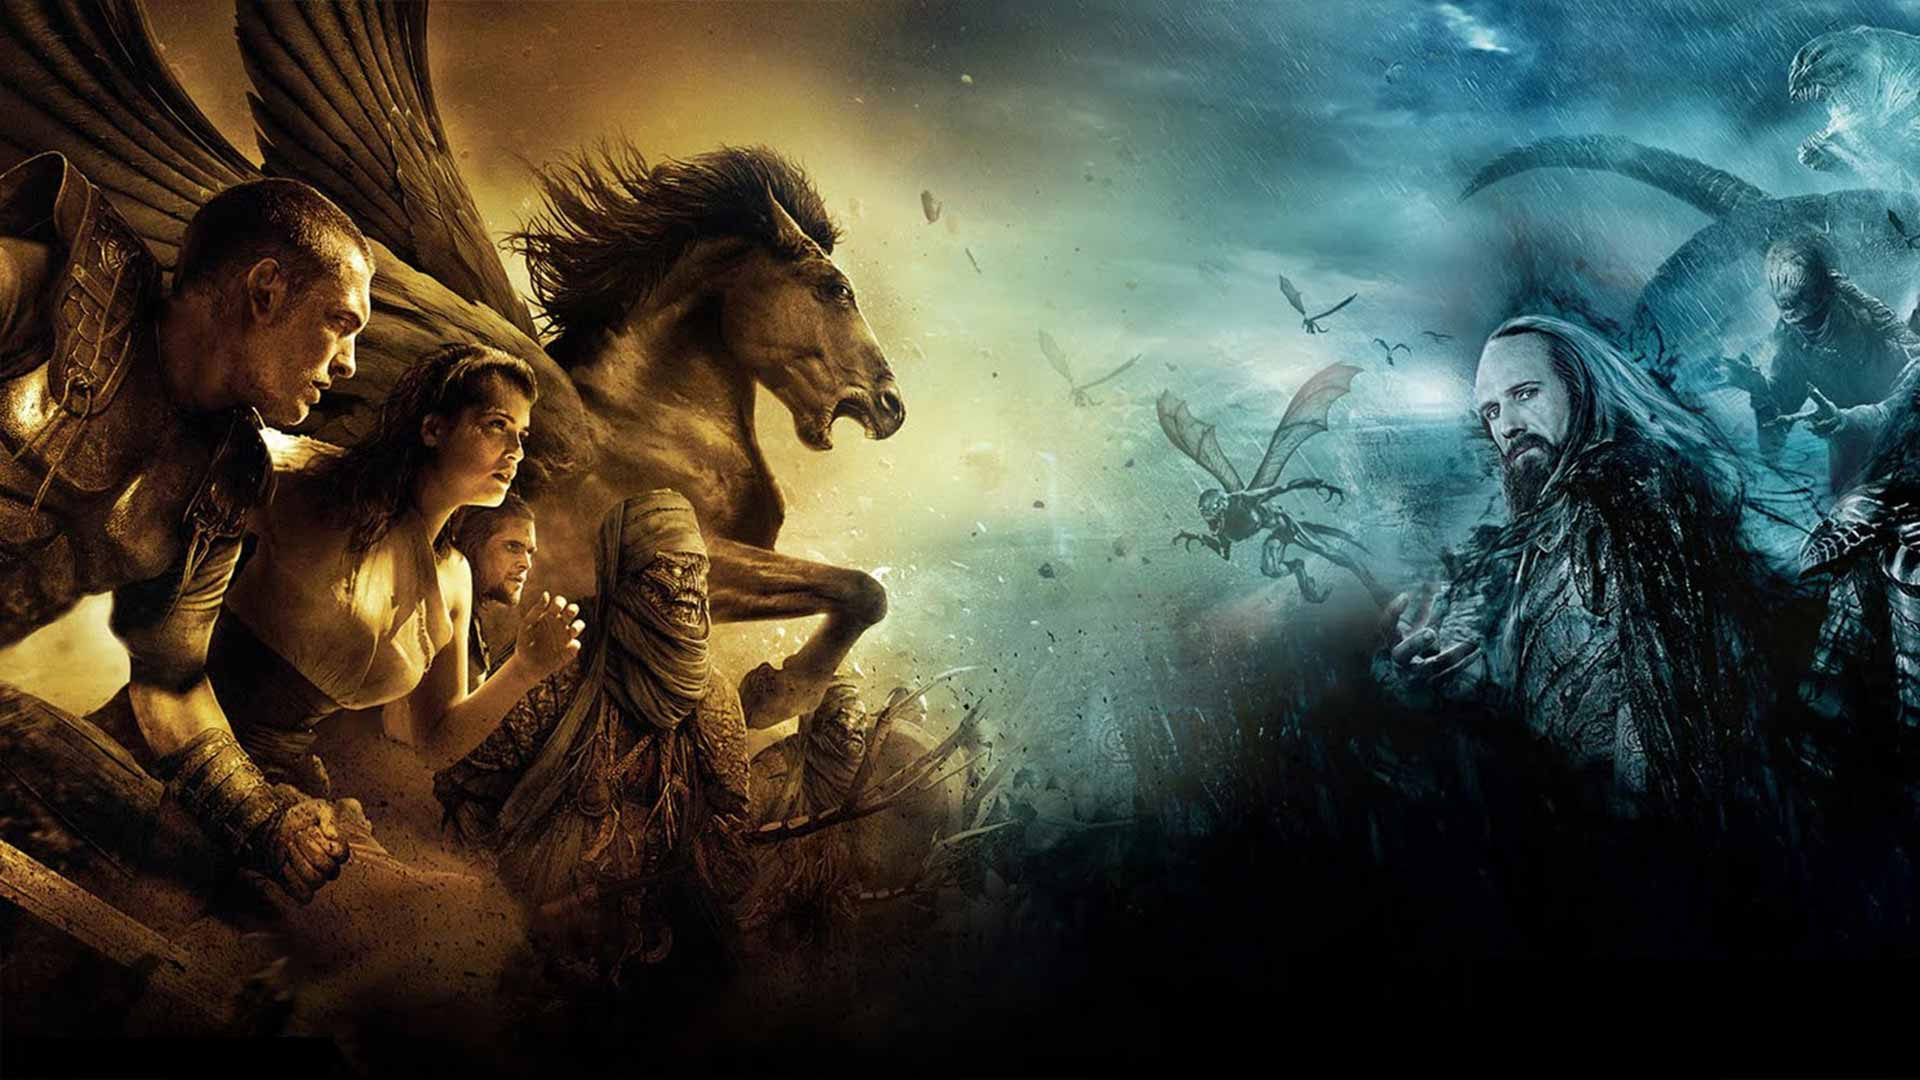 How Accurate Were the Myths in 'Clash of the Titans'?